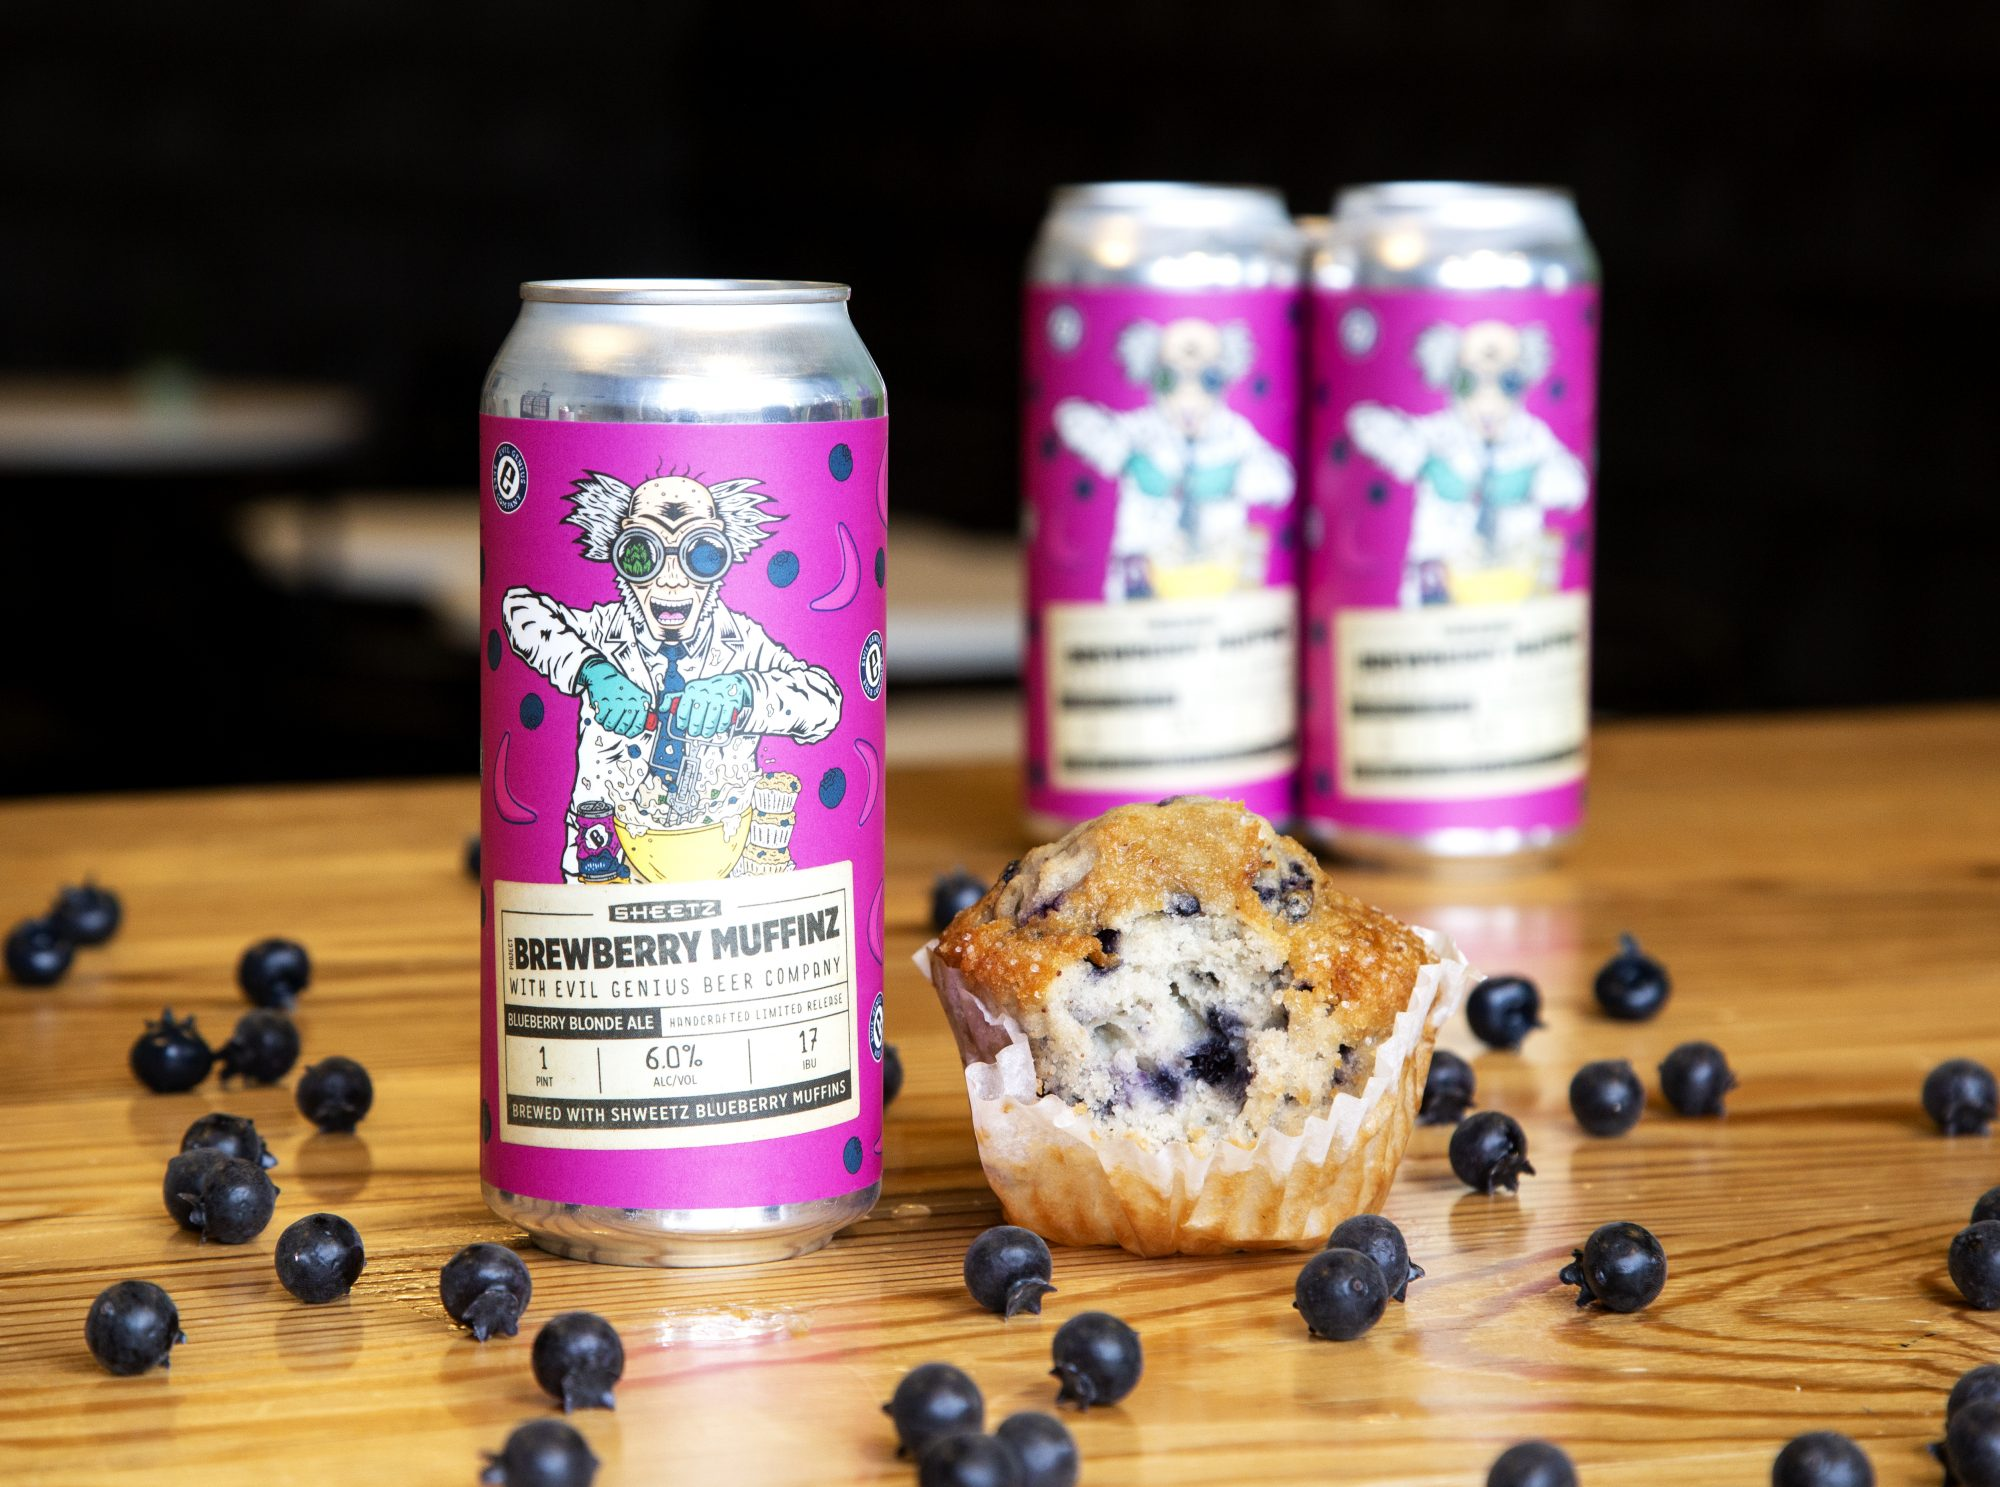 Sheetz's Second Beer Is Made with Their Blueberry Muffins